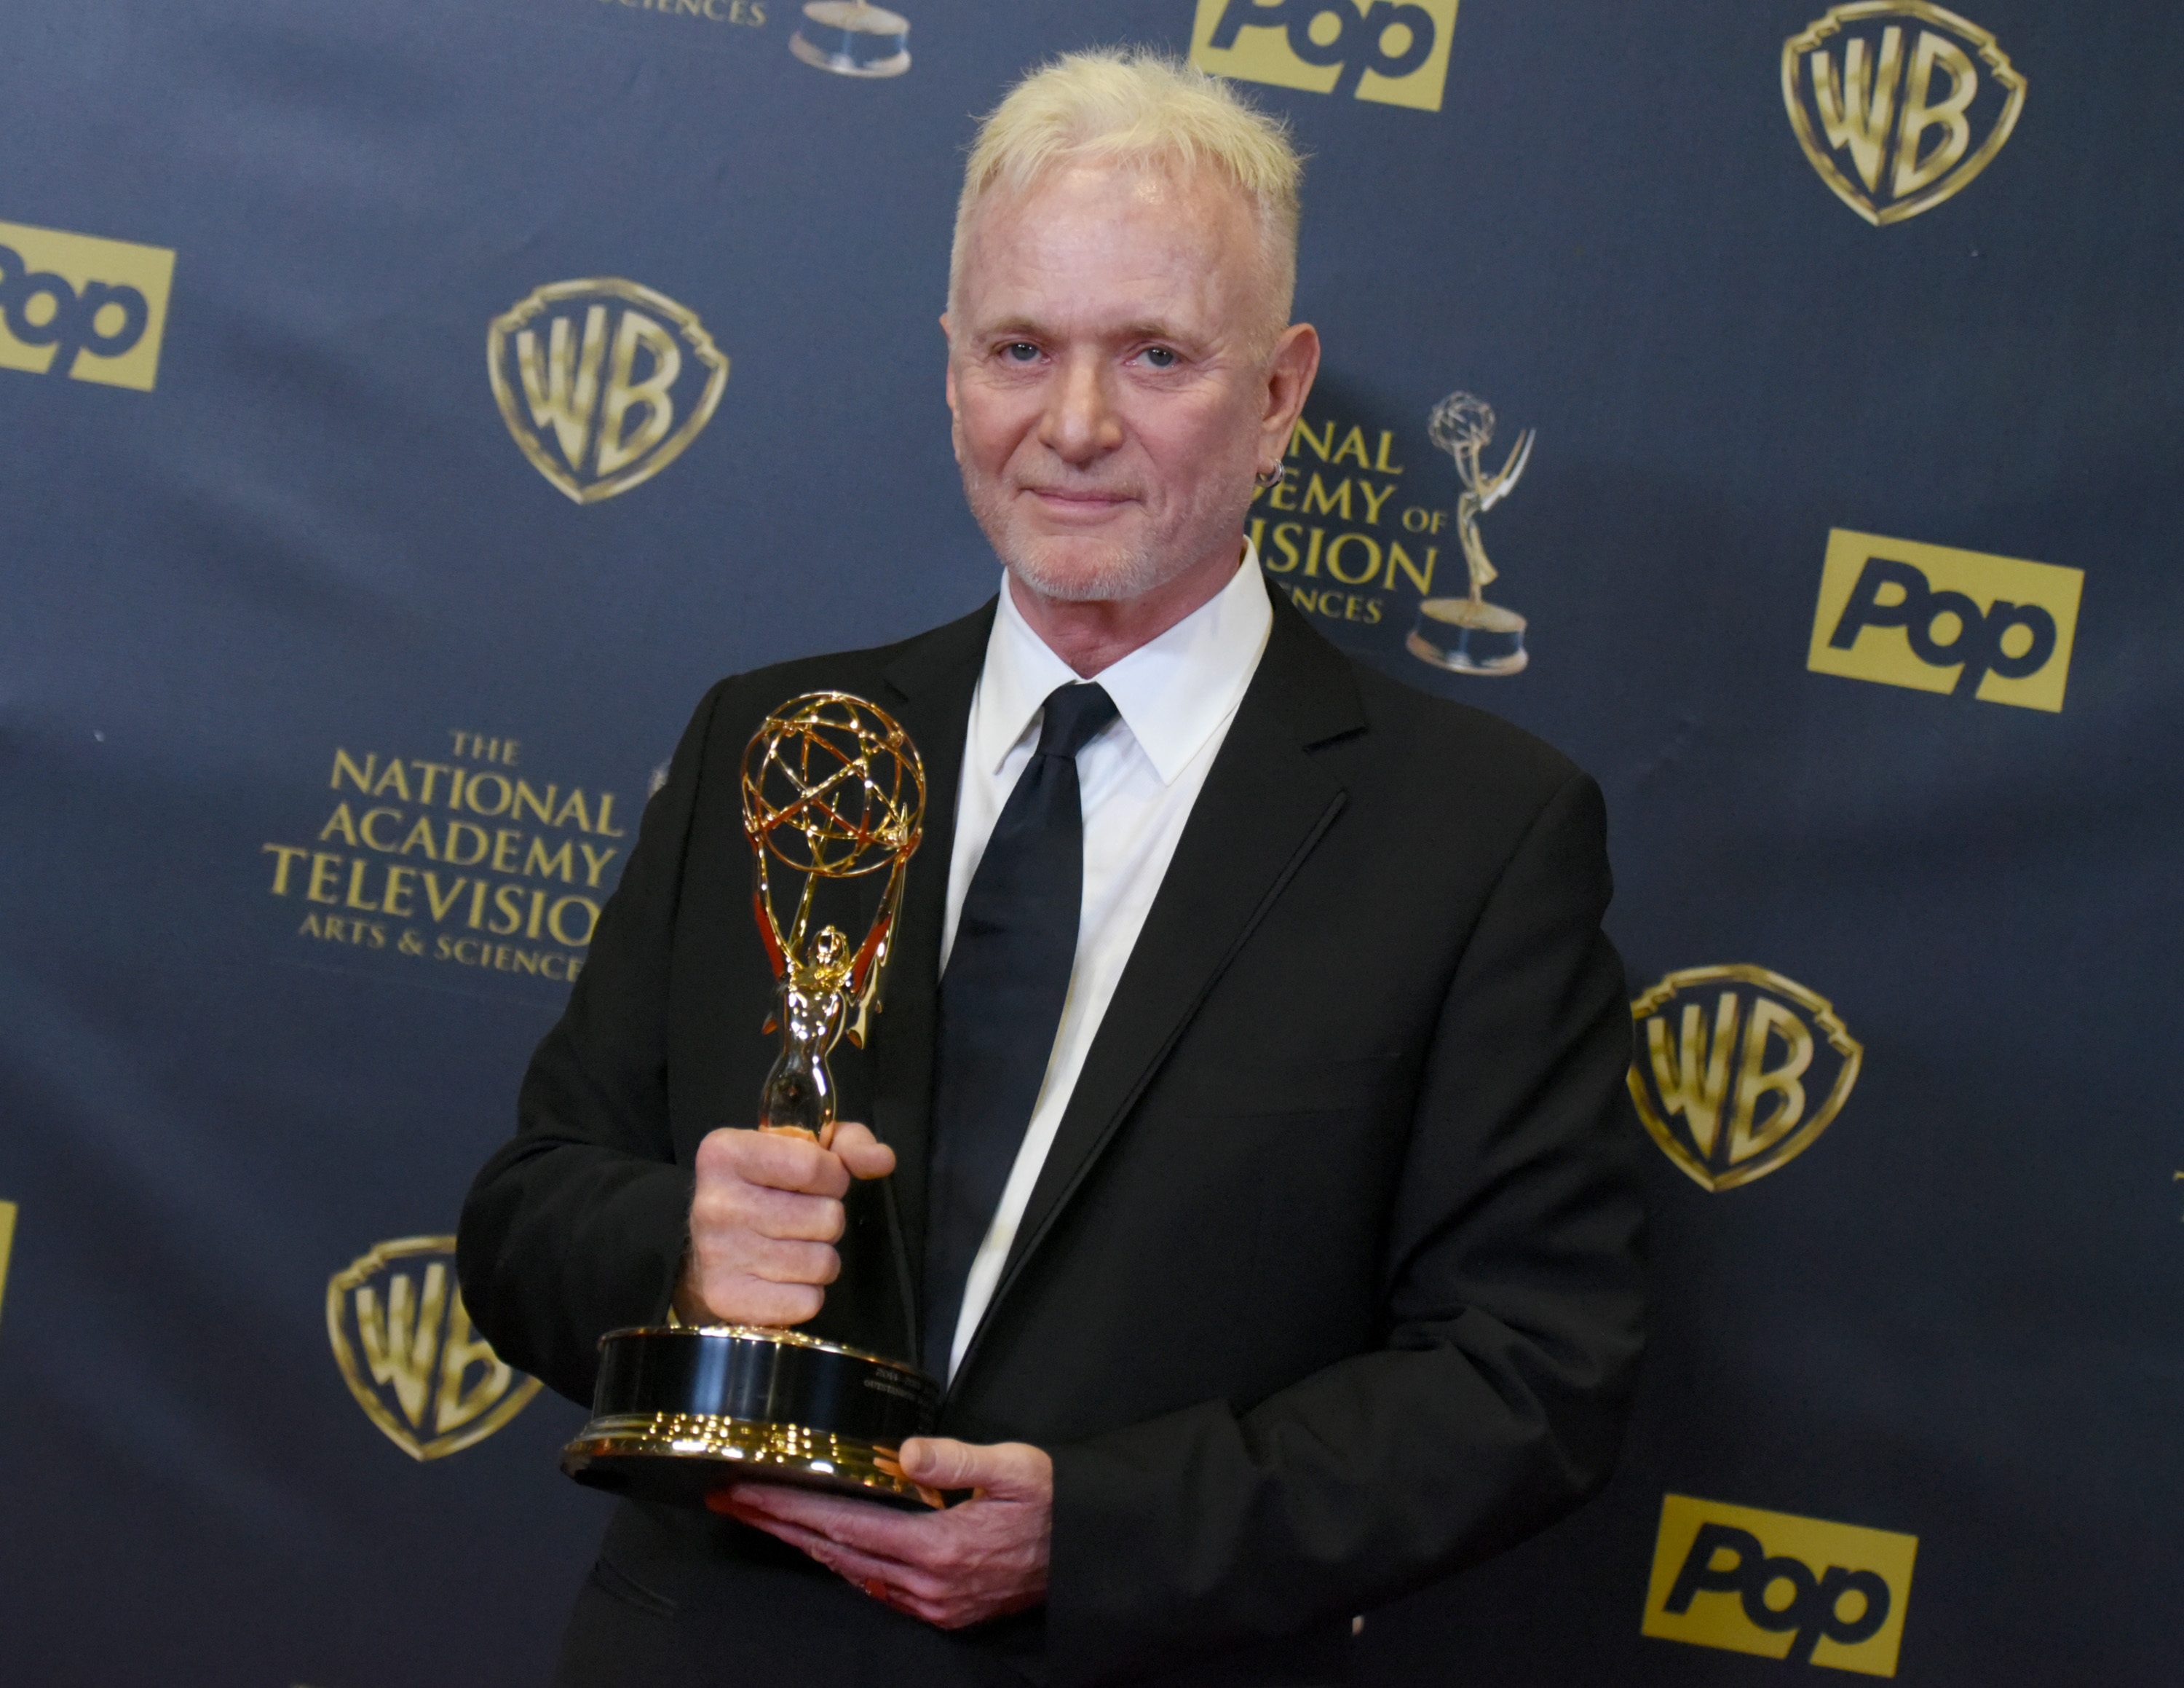 Anthony Geary with the award for outstanding lead actor in a drama series at the 42nd annual Daytime Emmy Awards in 2015.